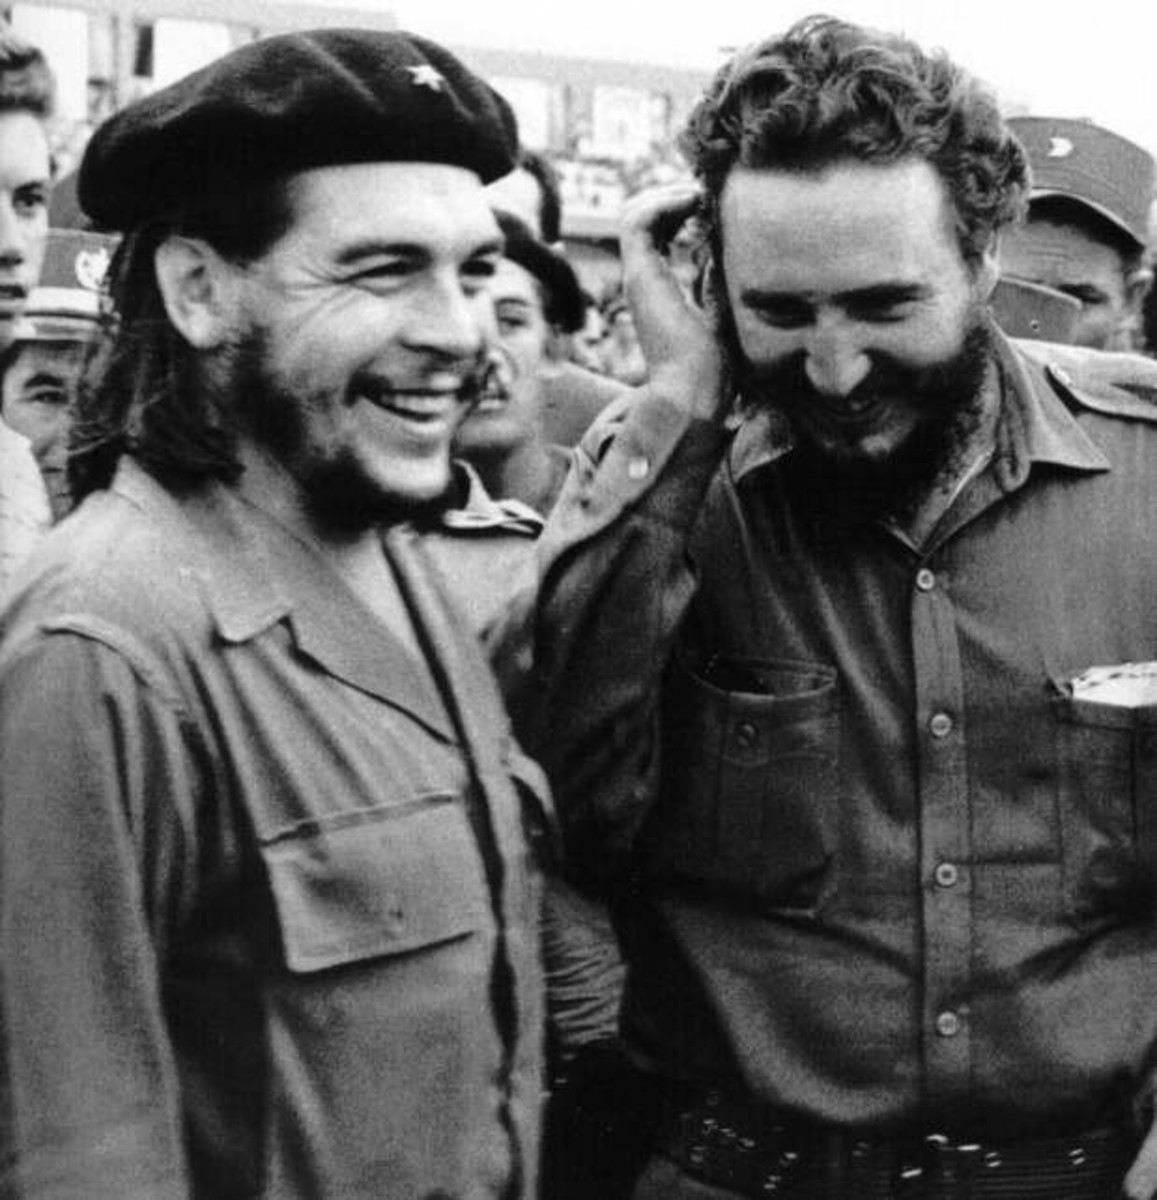 FIDEL CASTRO WITH CHE GUEVARA (MURDERERS WORSHIPED BY AMERICAN ATHEISTS)